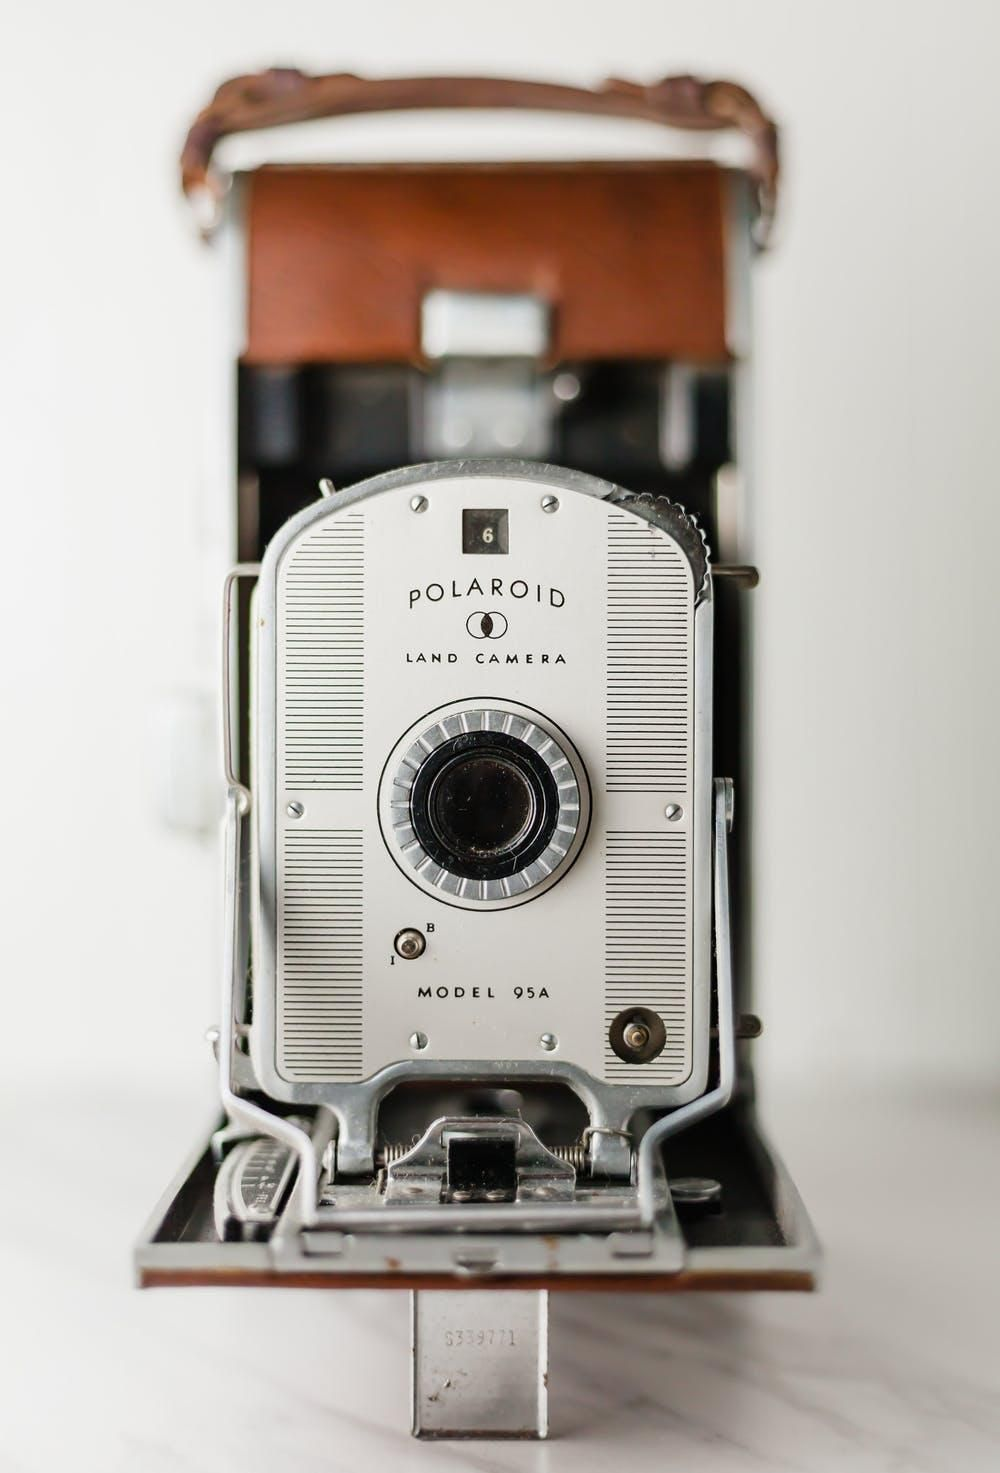 The original Polaroid camera freed users from needing to trek to a darkroom to develop their images.